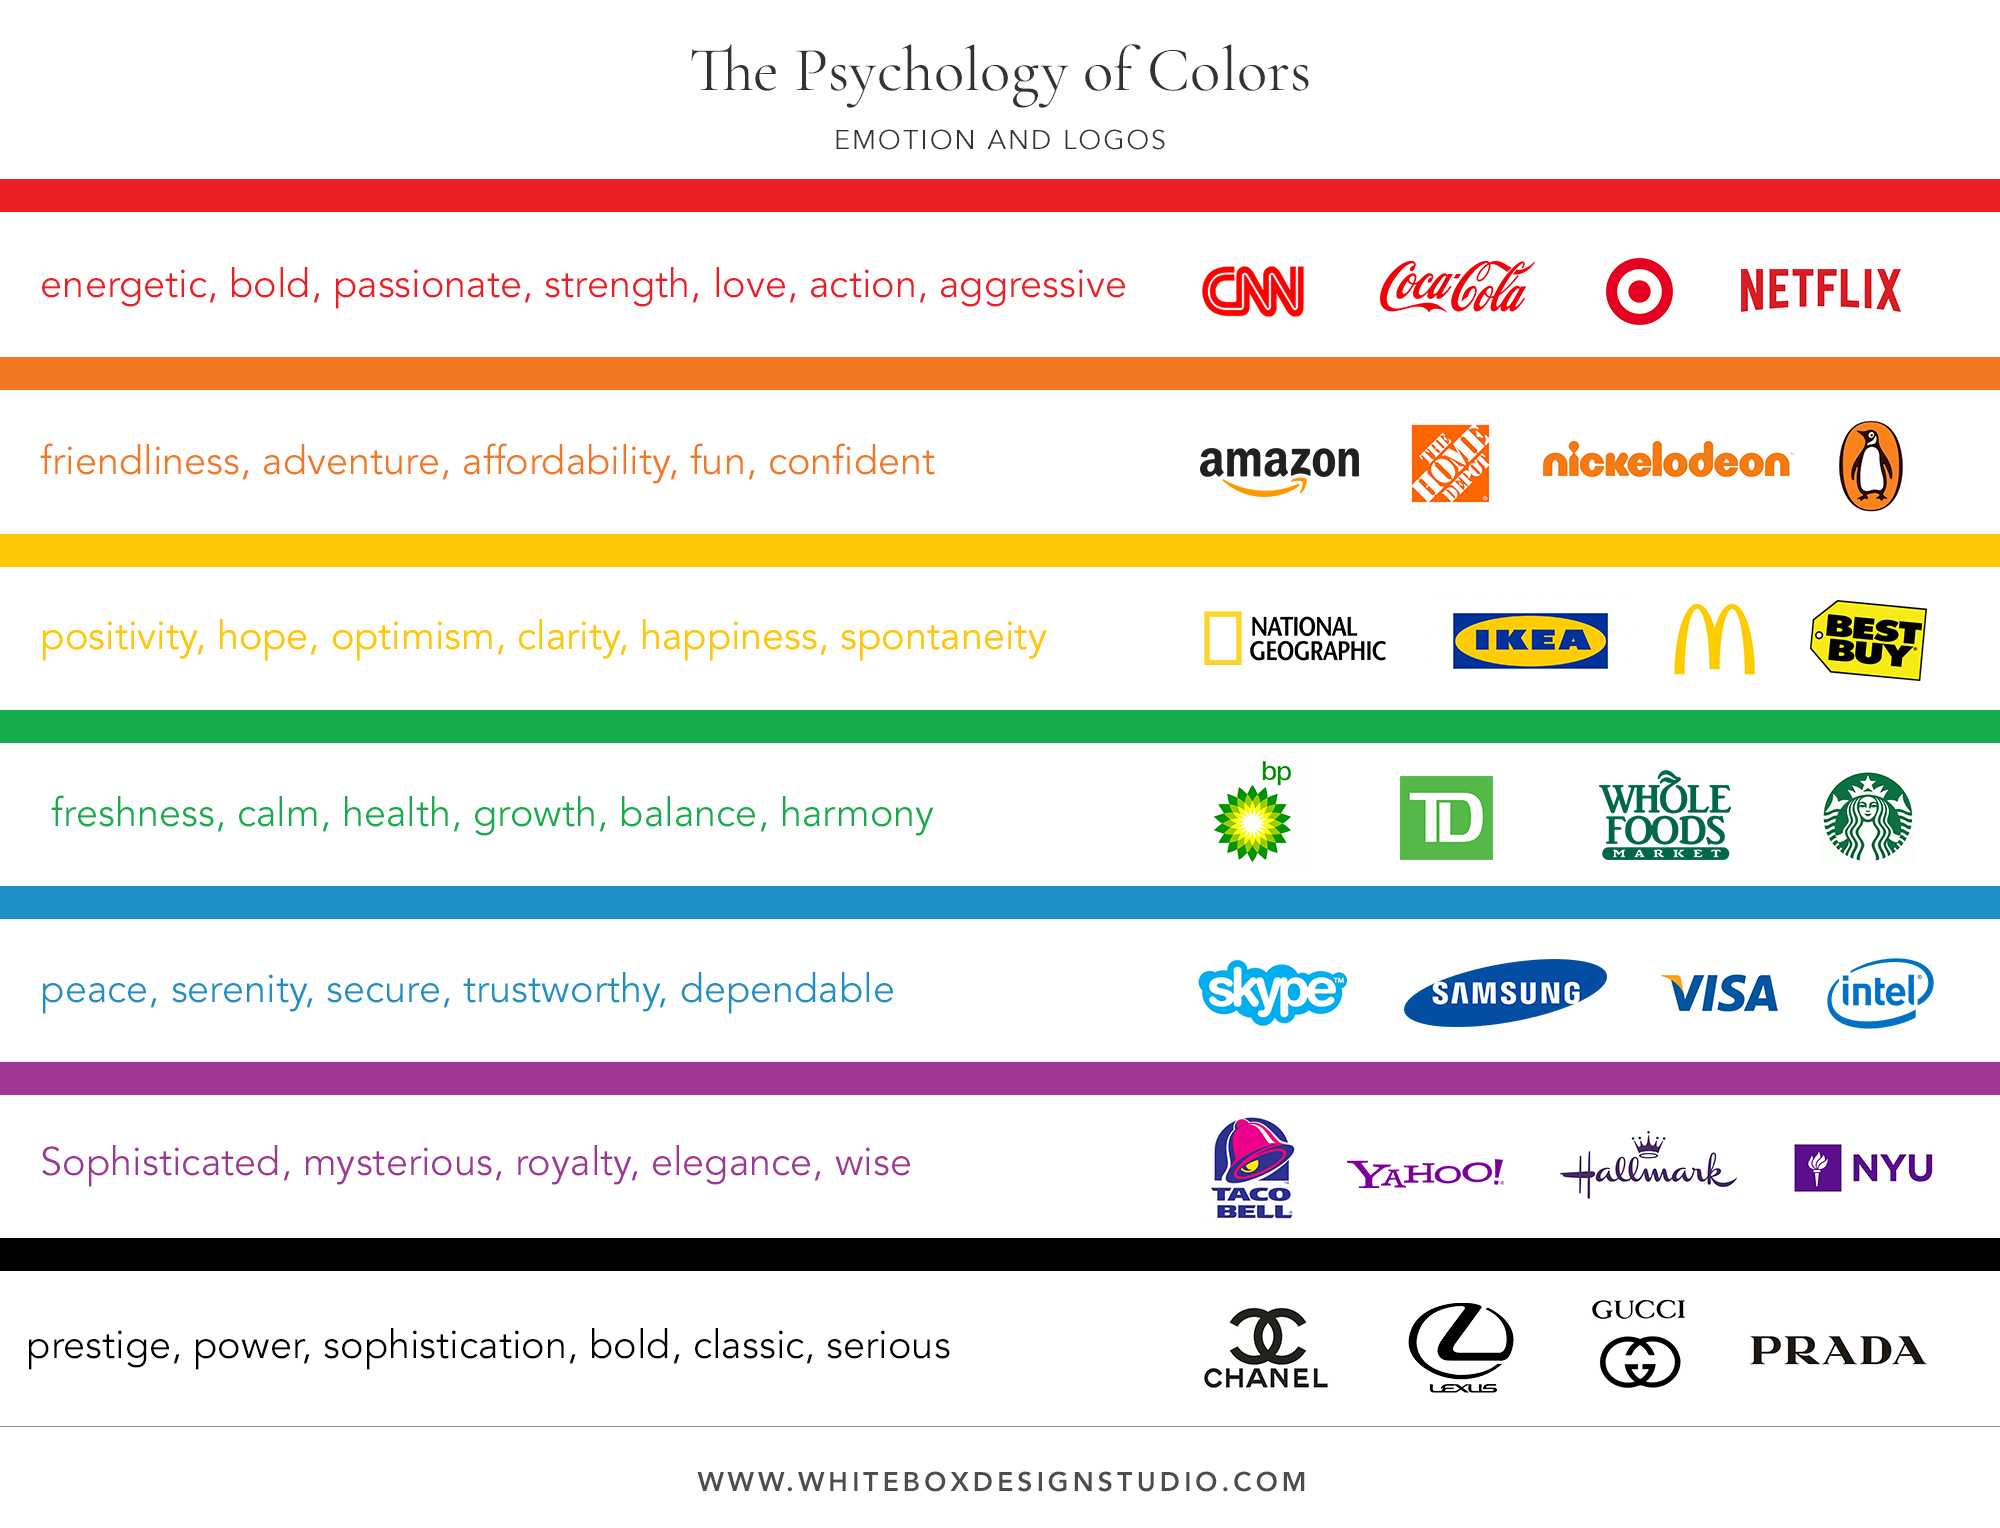 How to choose brand colors-The psychology of colors by White Box Design Studio